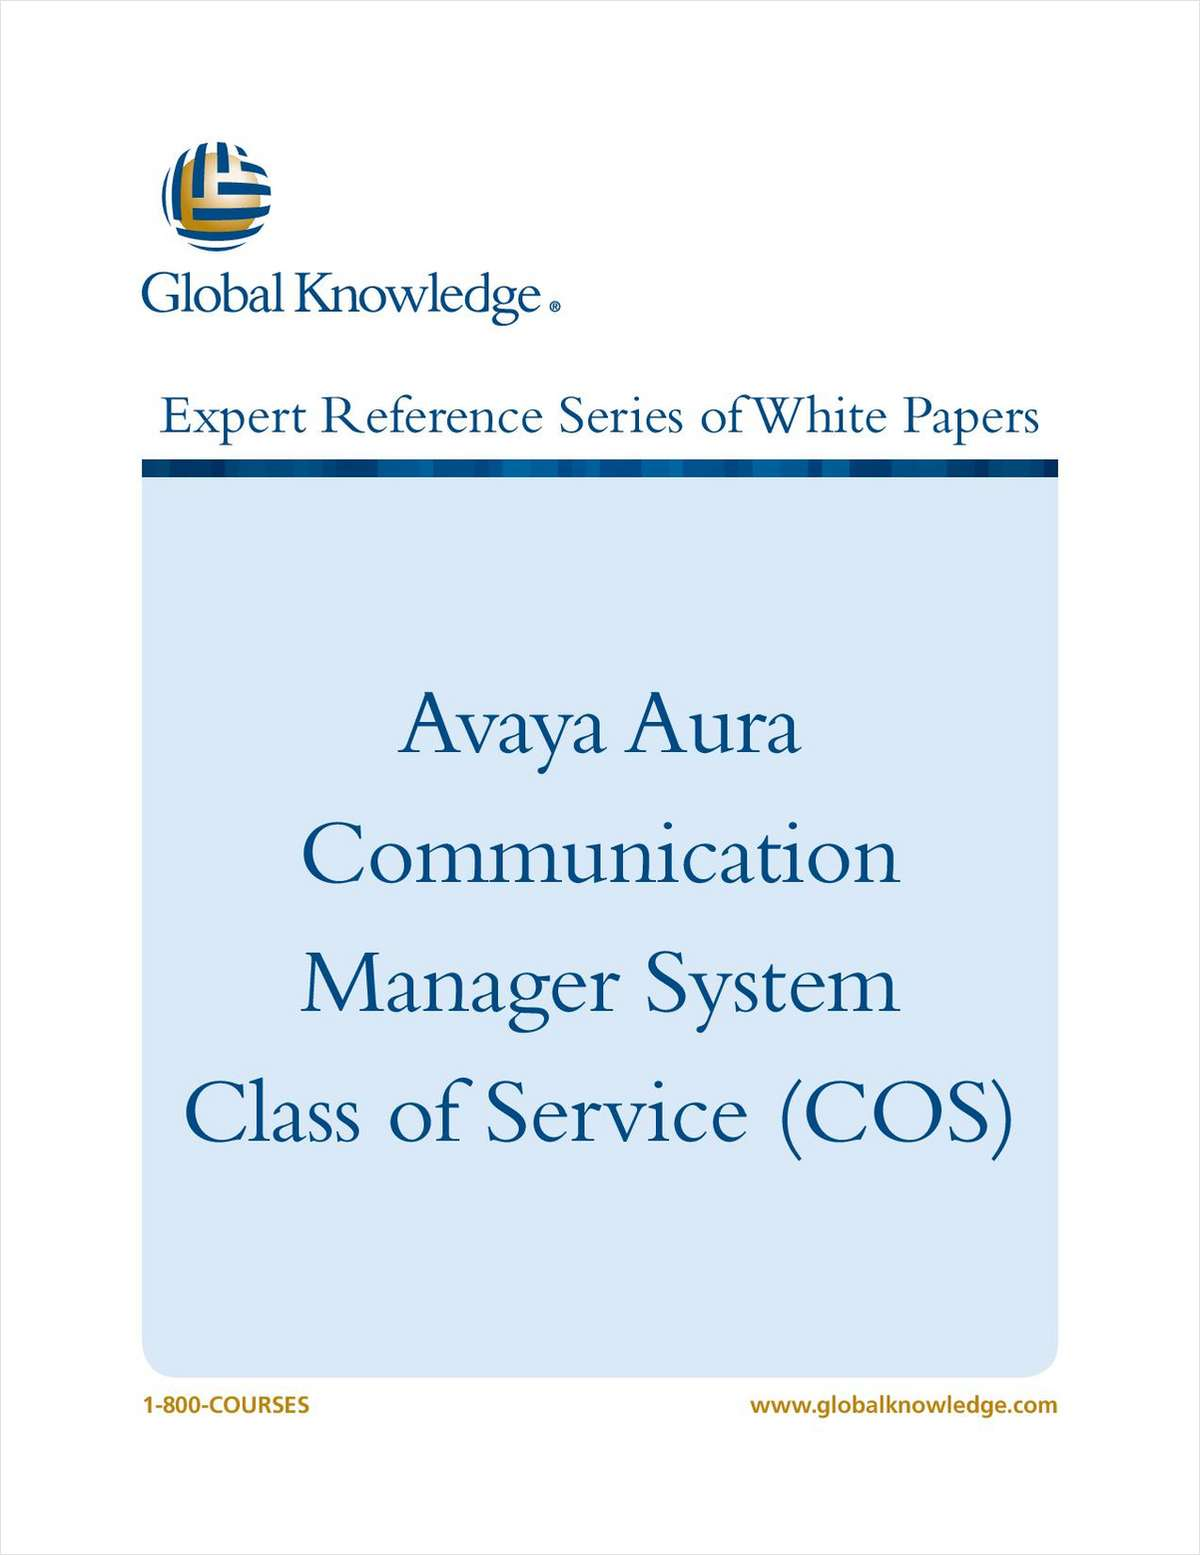 Avaya Aura Communication Manager System Class of Service (COS)